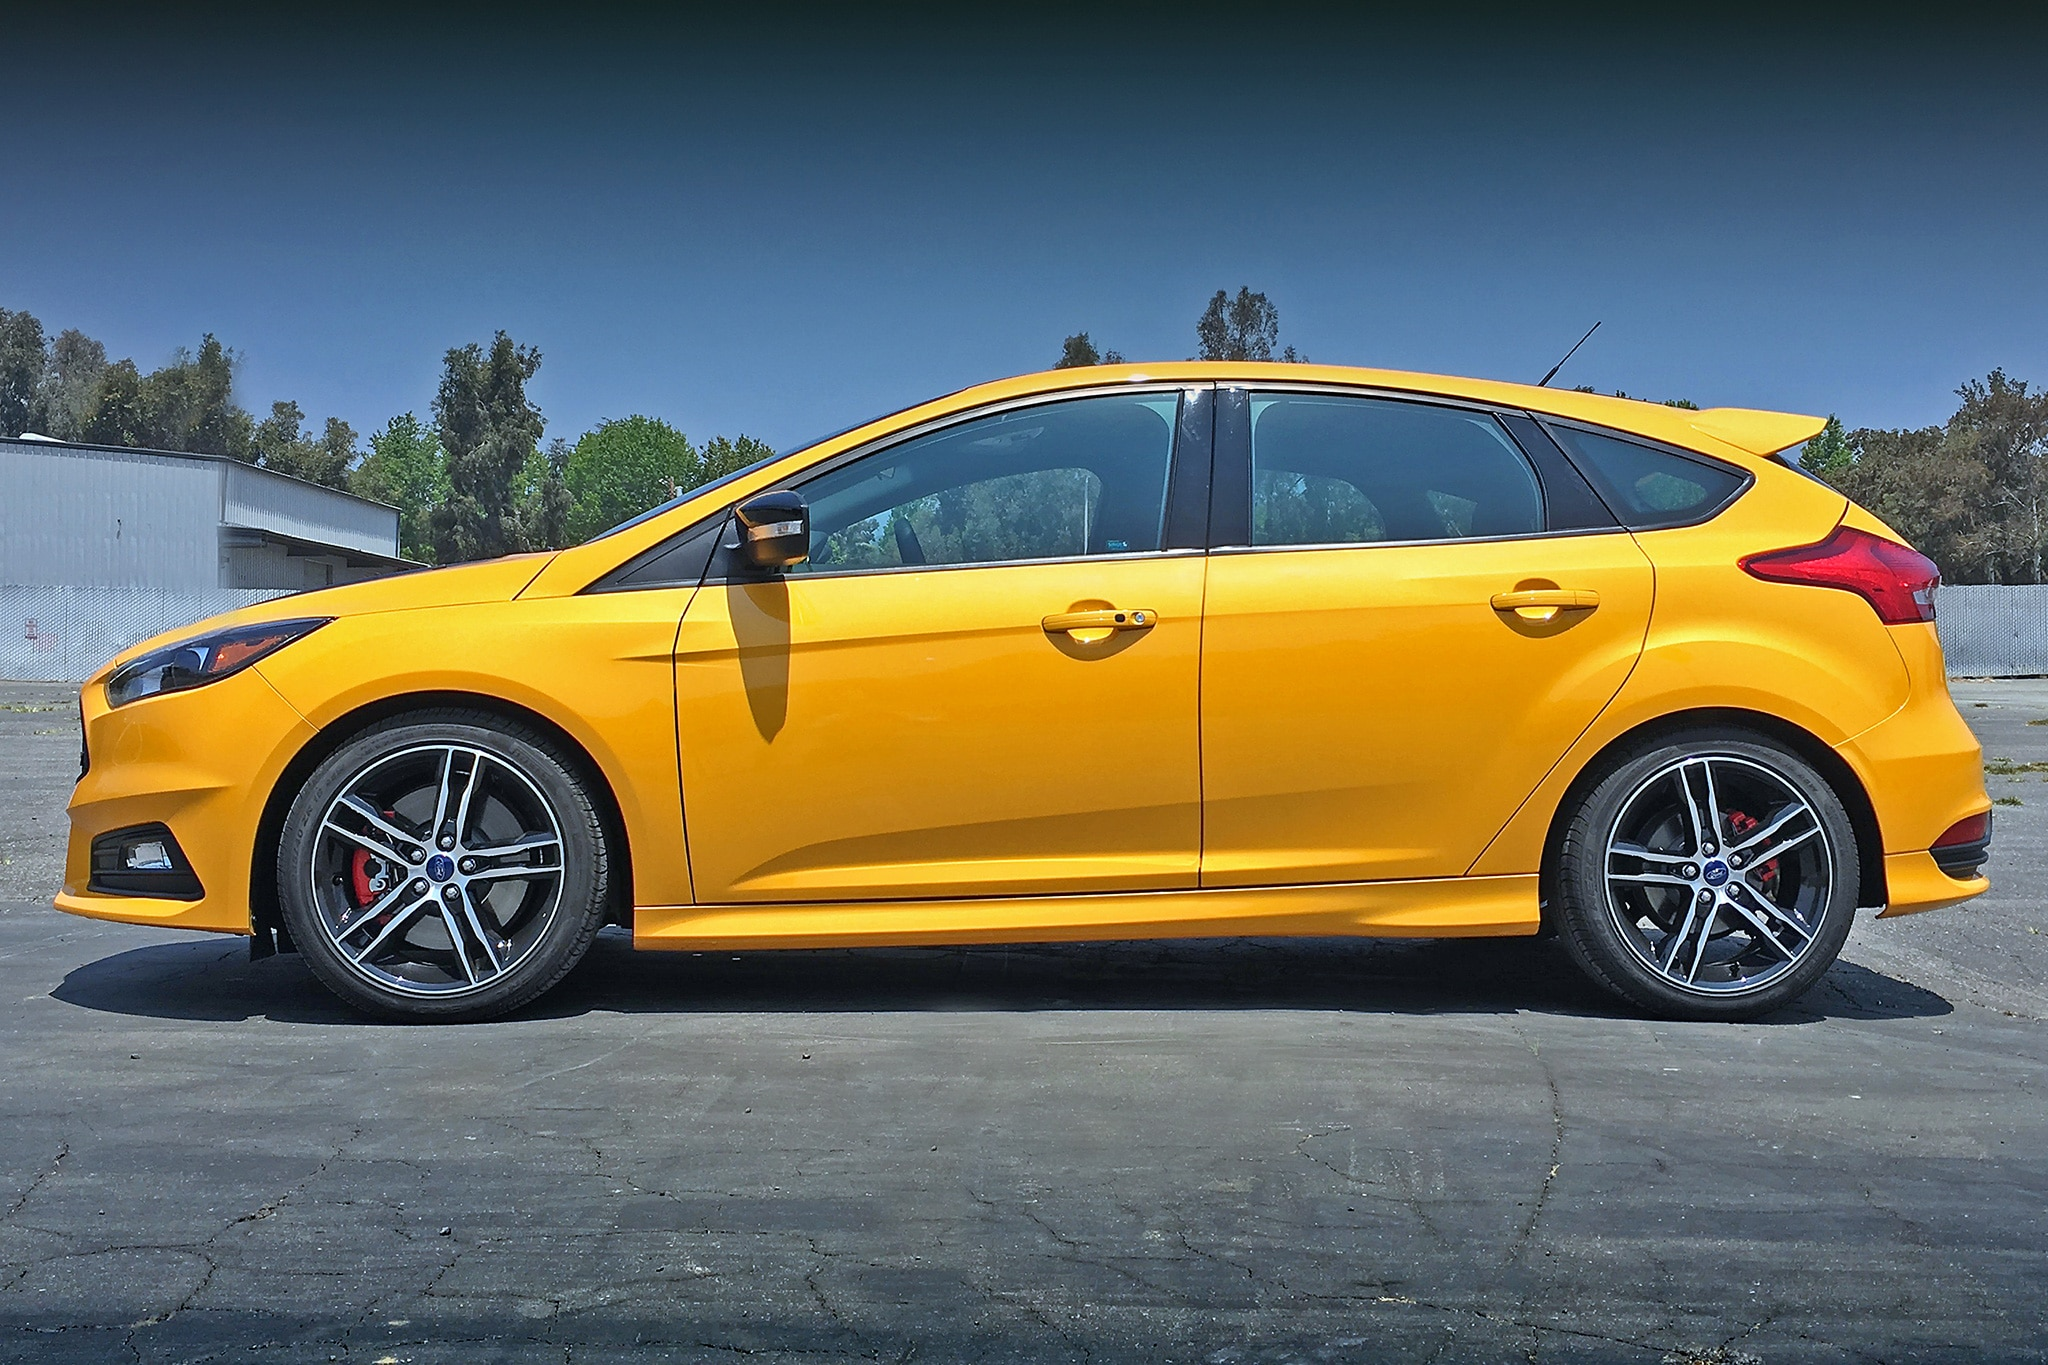 Ford Focus St Specs 0 60 >> 2016 Ford Focus ST One Week Review and Roadtest ...